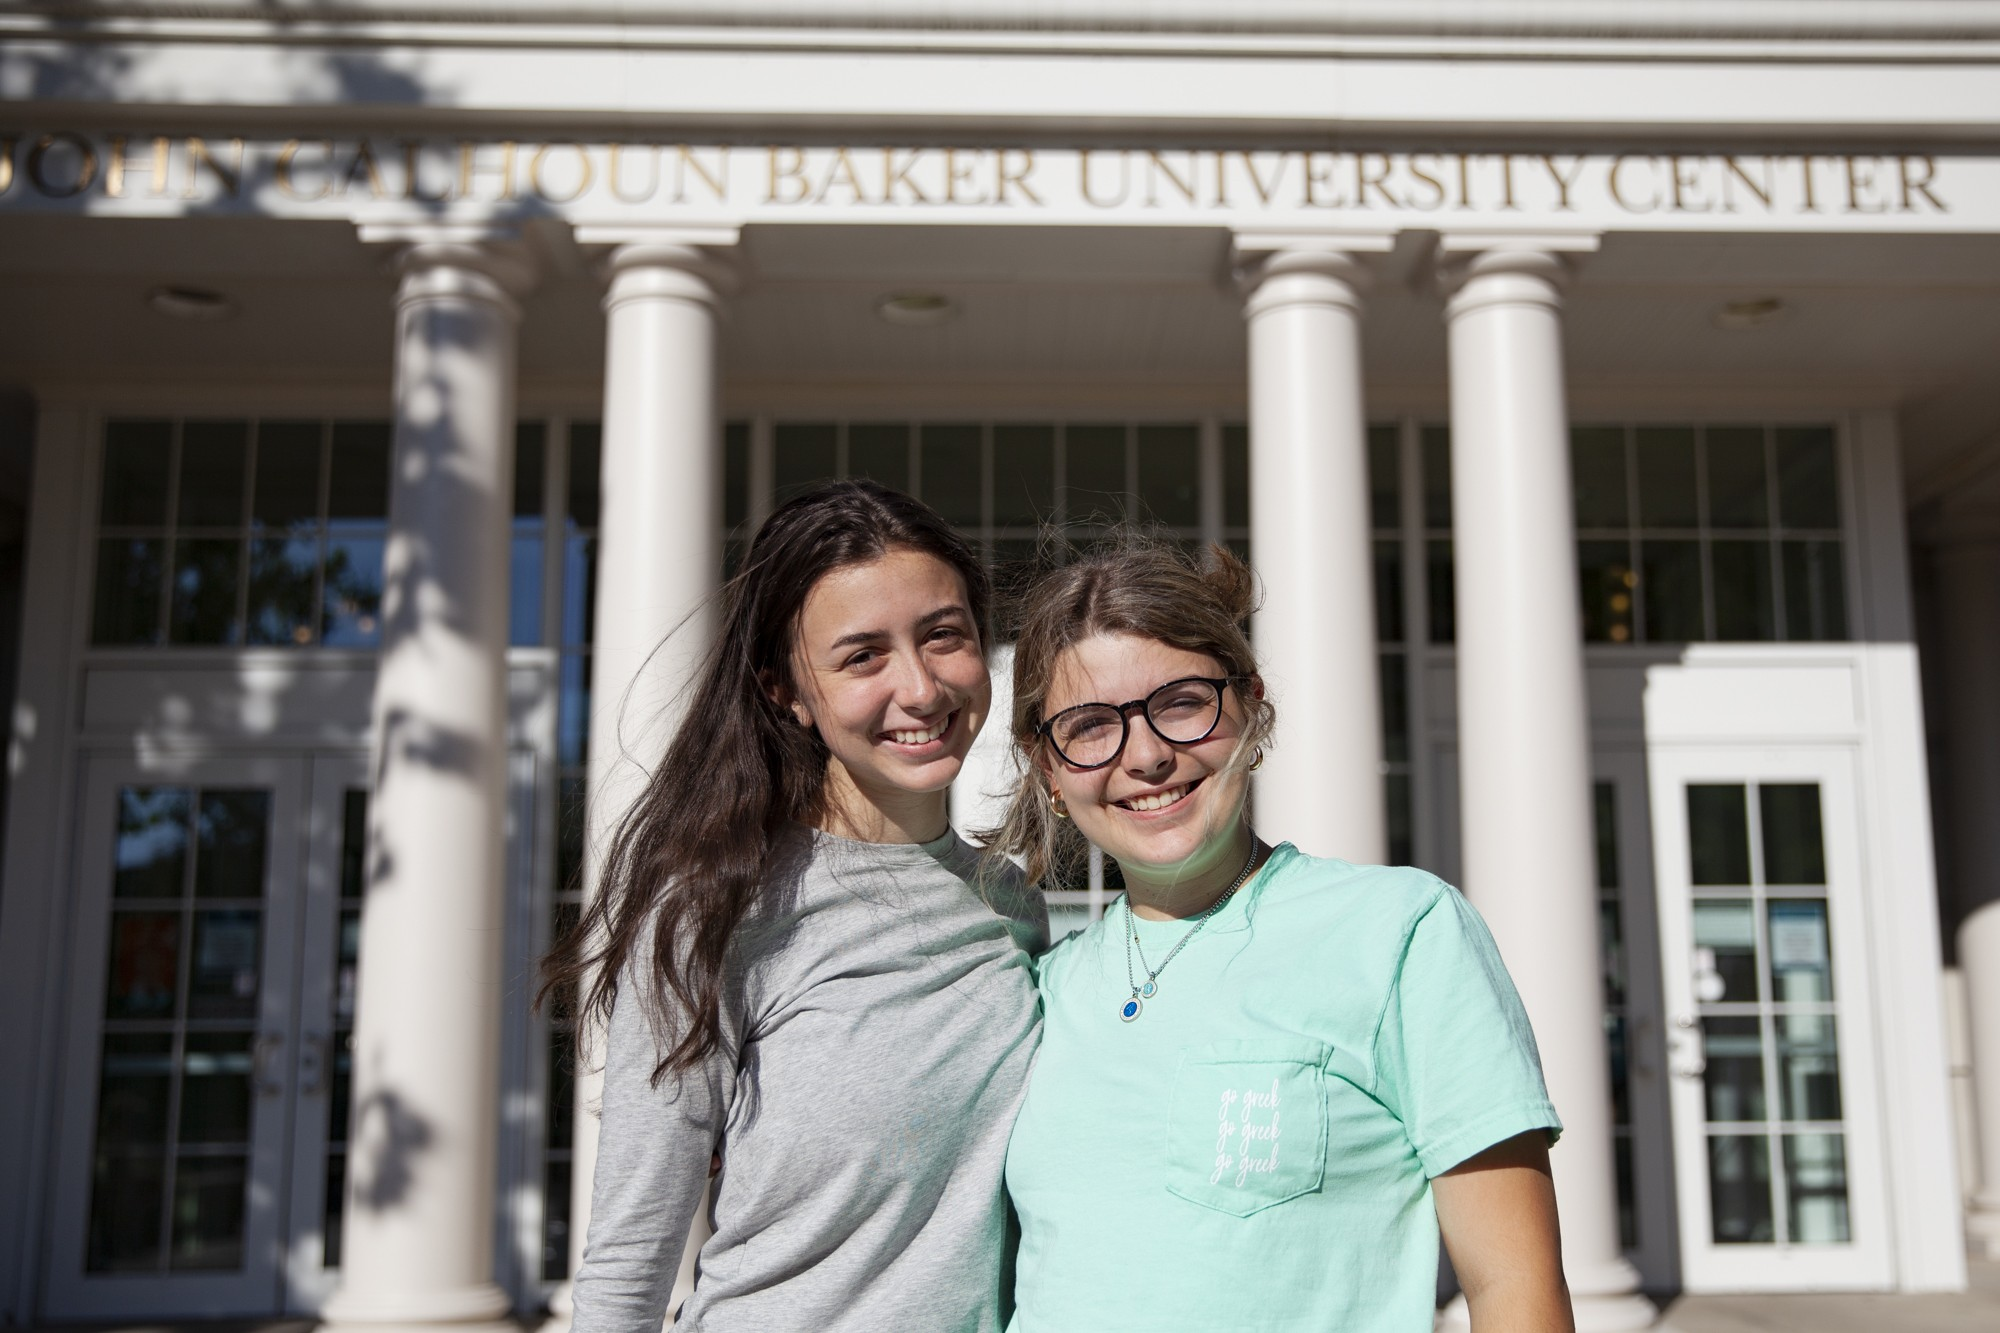 Twins Sam, left, and Sophia, right, in front of Baker University Center at Ohio University on Tuesday, Sept. 7, 2021. The twins were born on Sept. 11, 200,1 and have felt personally tied to the events of that day for their entire lives.